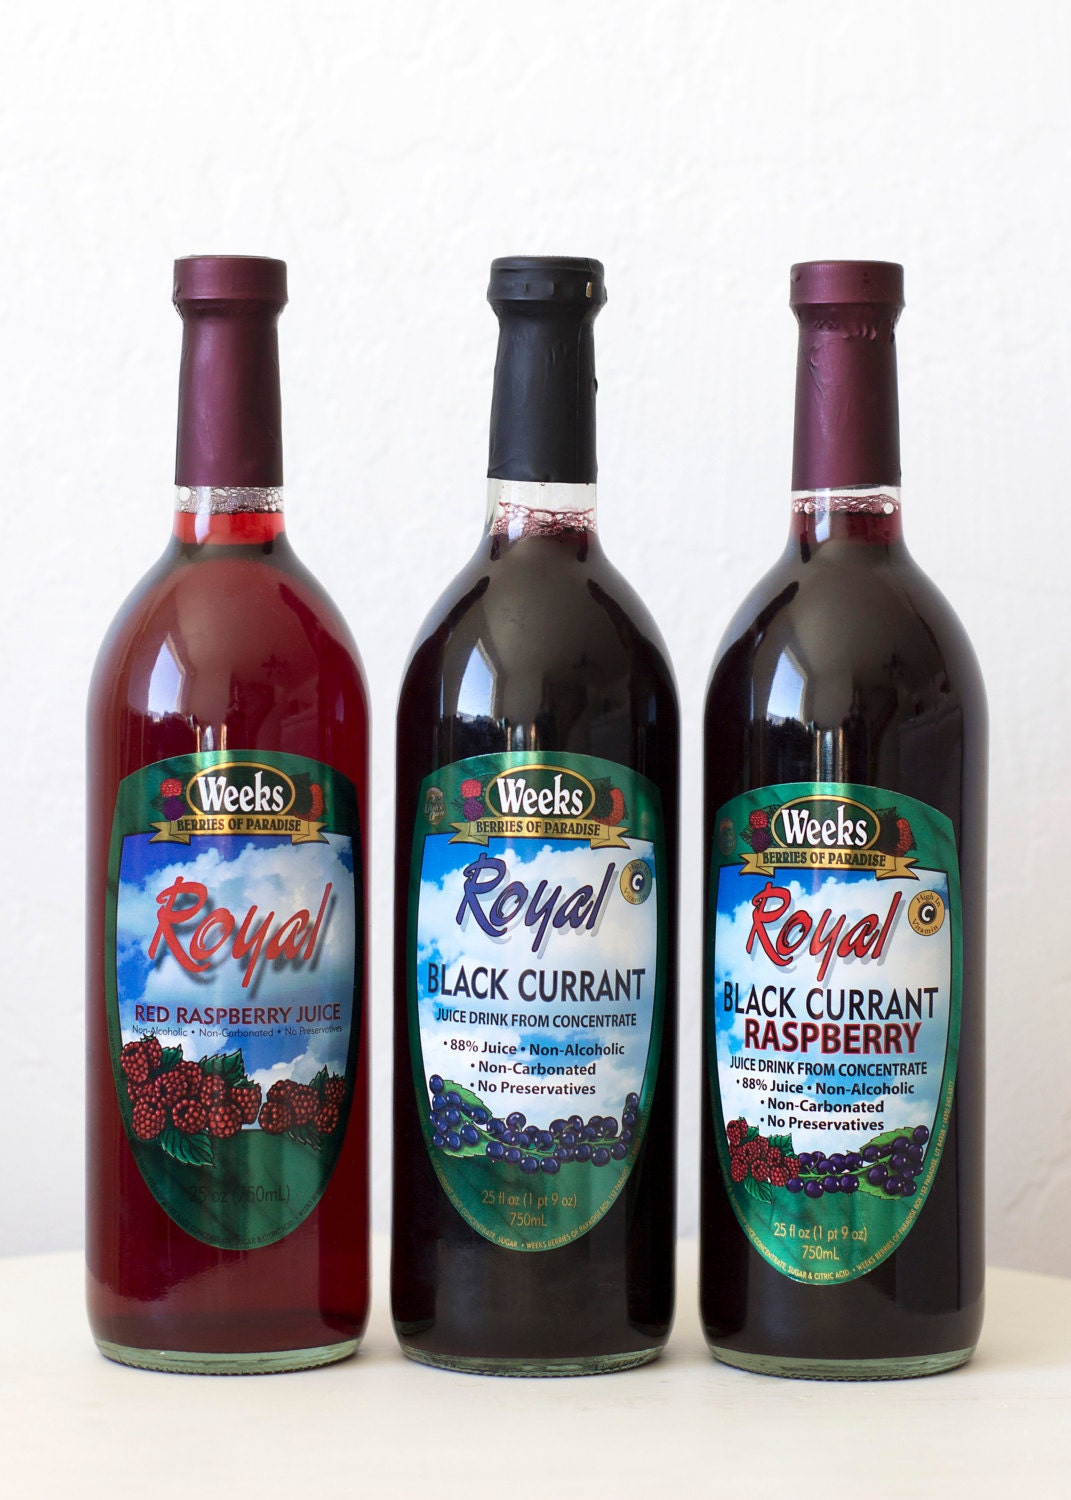 All Natural, Organic, No Preservatives, Royal Black Currant Juice, Non-Carbonated - Utah's Own